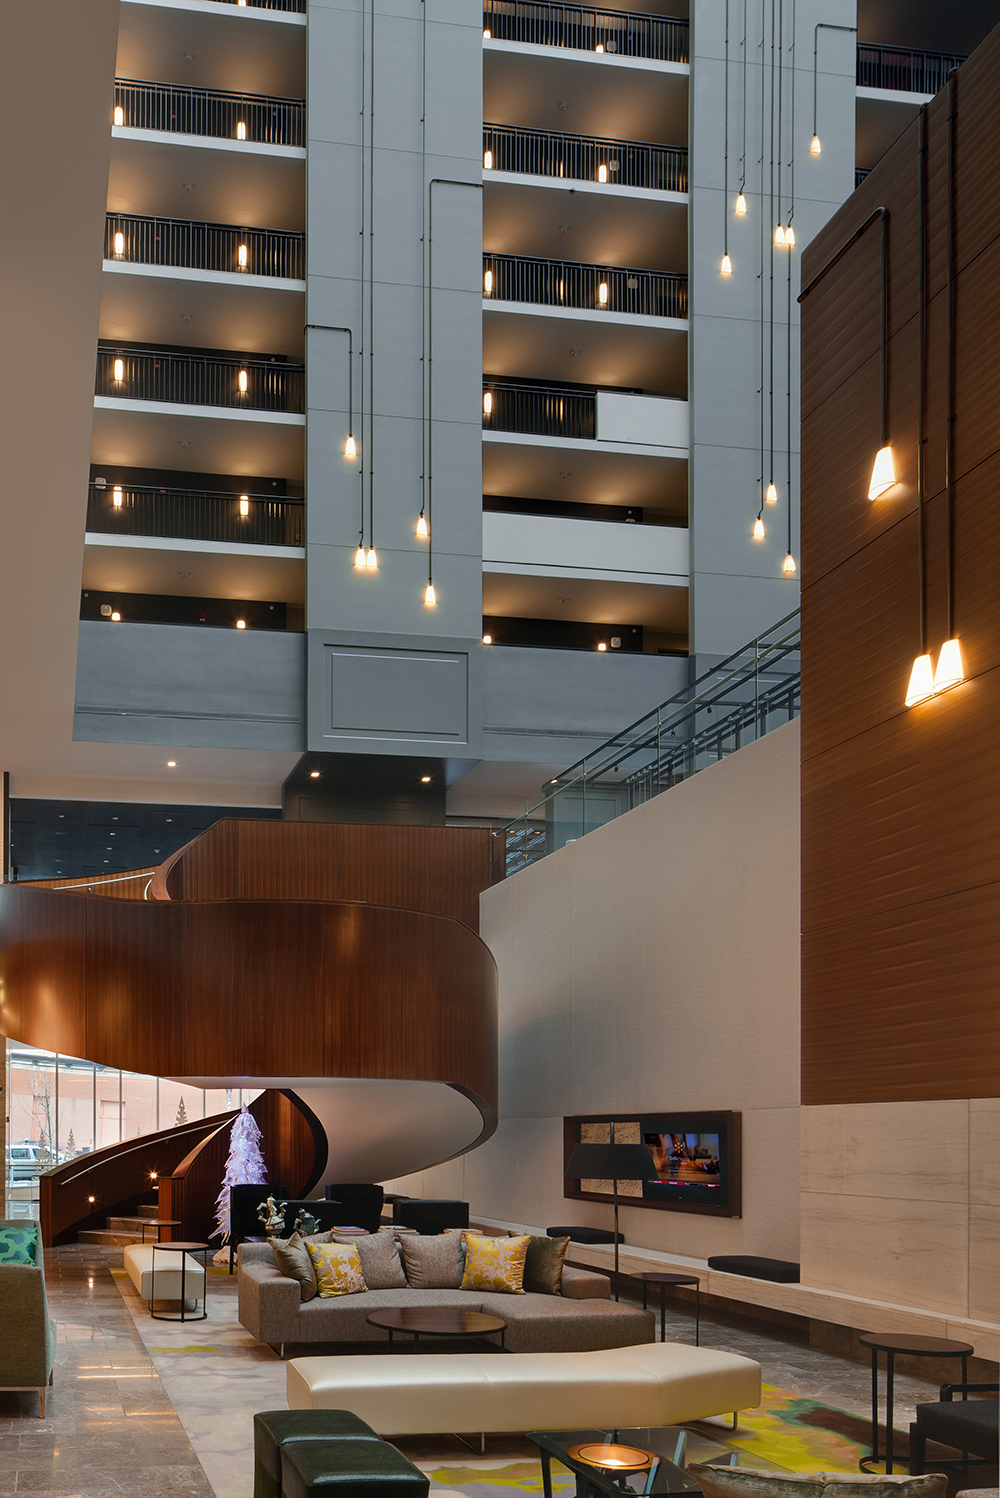 Unique, A-shaped custom light fixtures with square-angled black connecting pipes in a hotel lobby.